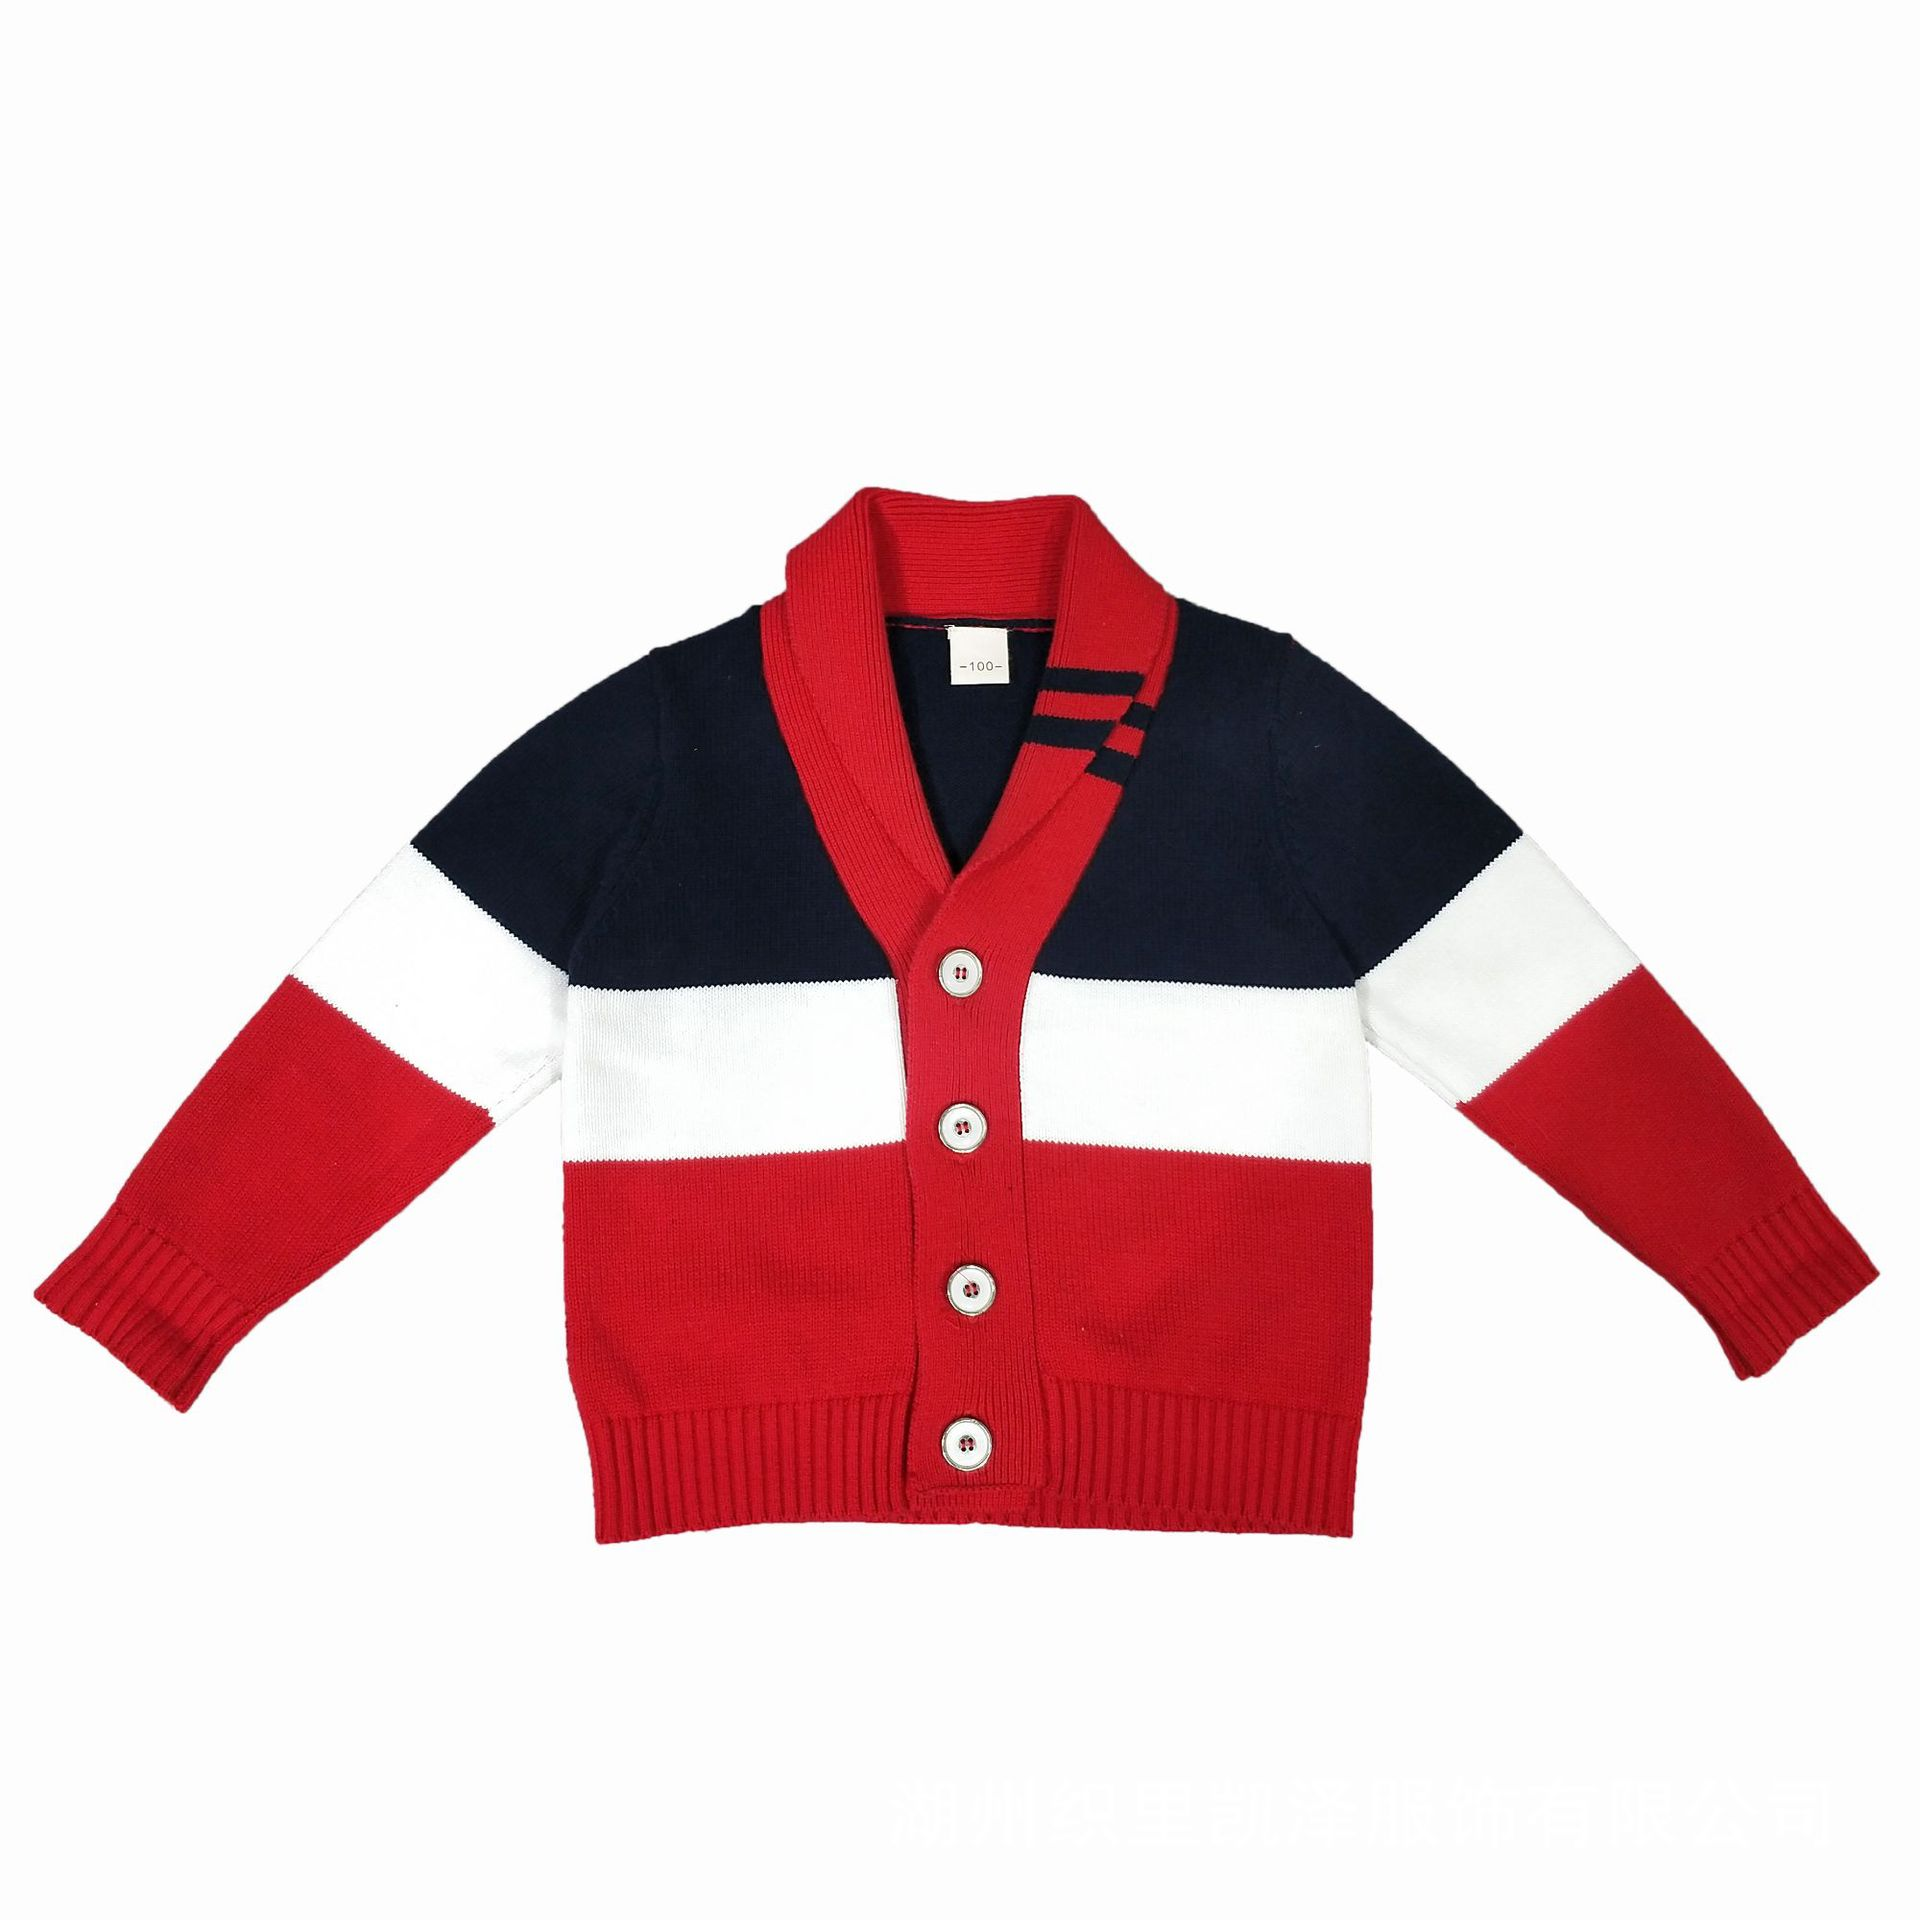 Young STUDENT'S School Uniform Children Sports Clothing Set Kindergarten Suit Spring And Autumn Men And Women Autumn Business At